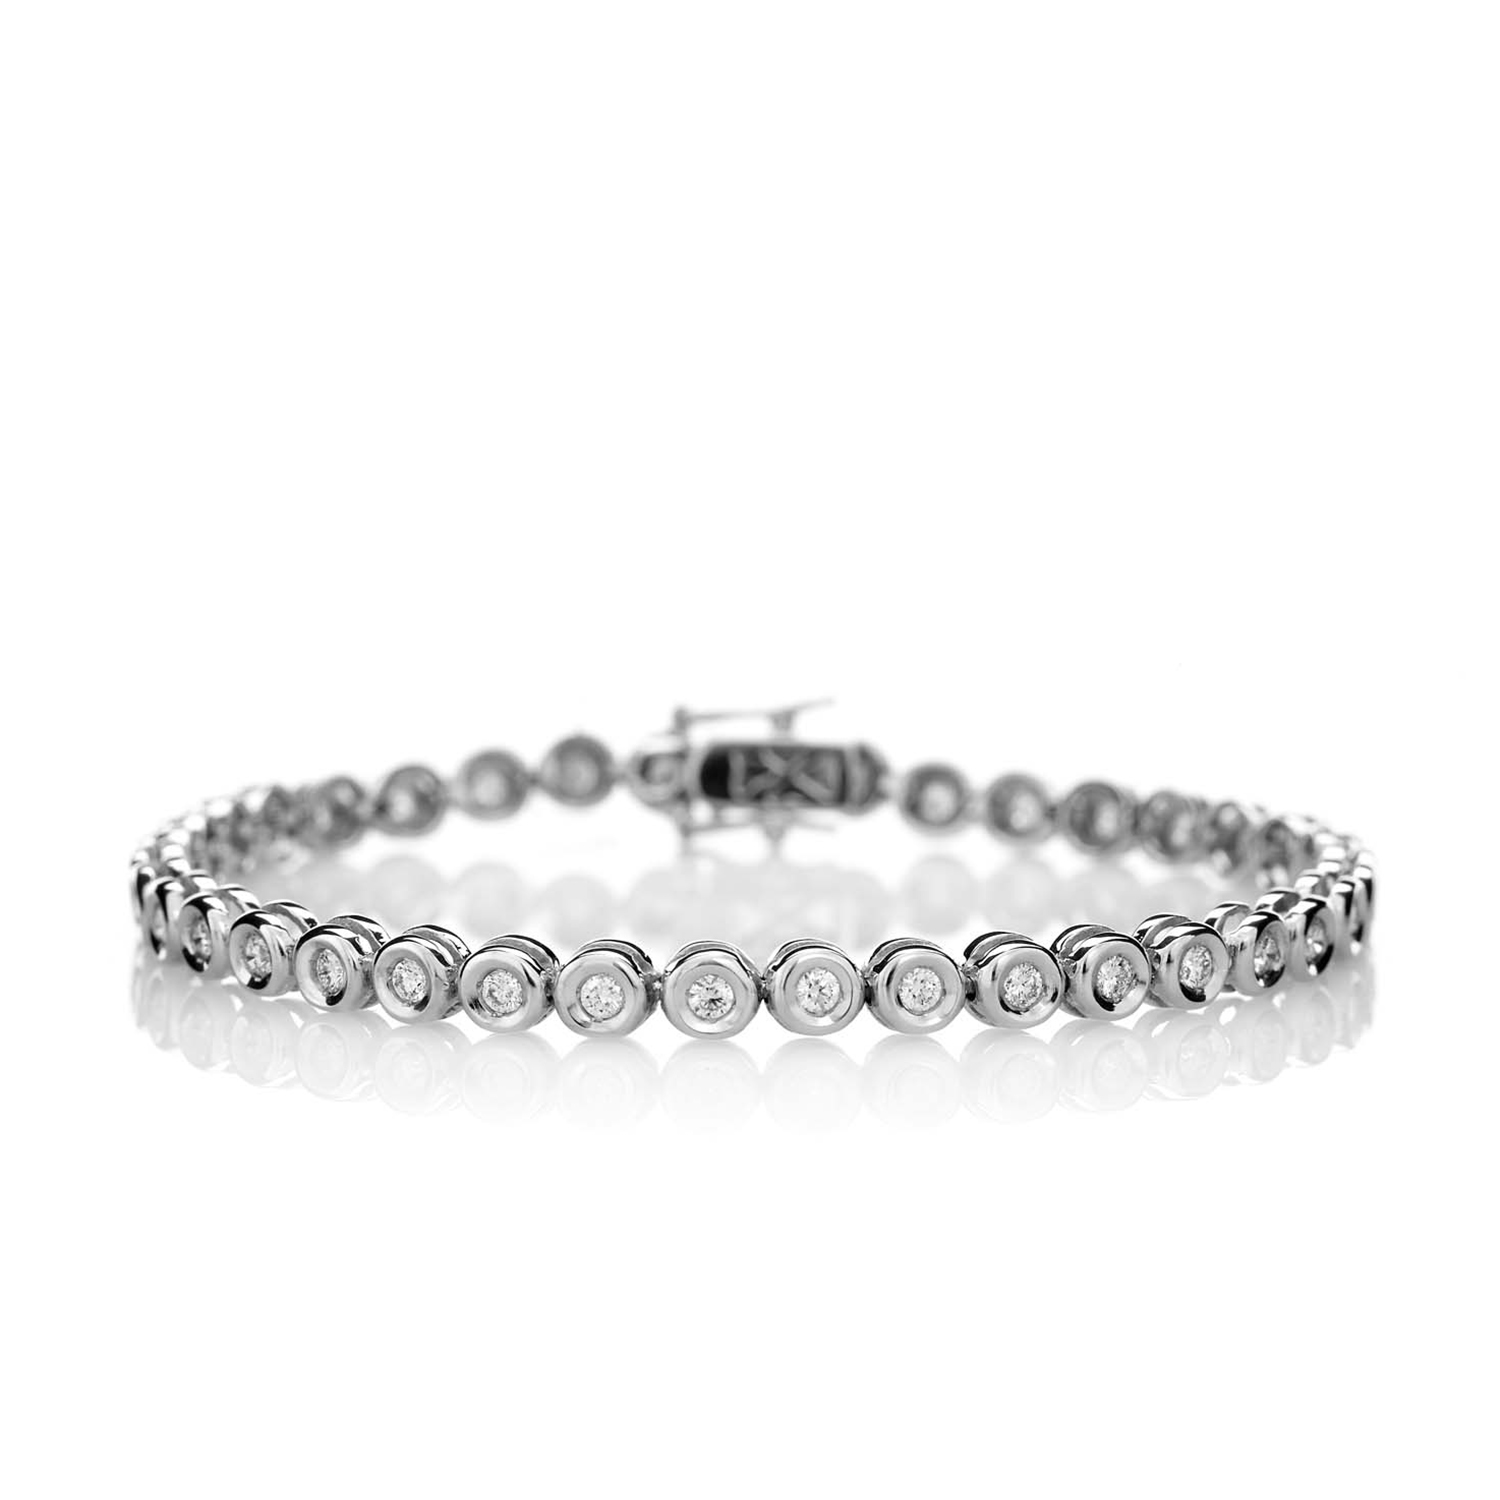 Sensi joyas jewellery Granada silver engagement18K WHITE GOLD BRACELET DECORATED WITH 1.65CT OF BRILLIANT SIZE DIAMONDS.